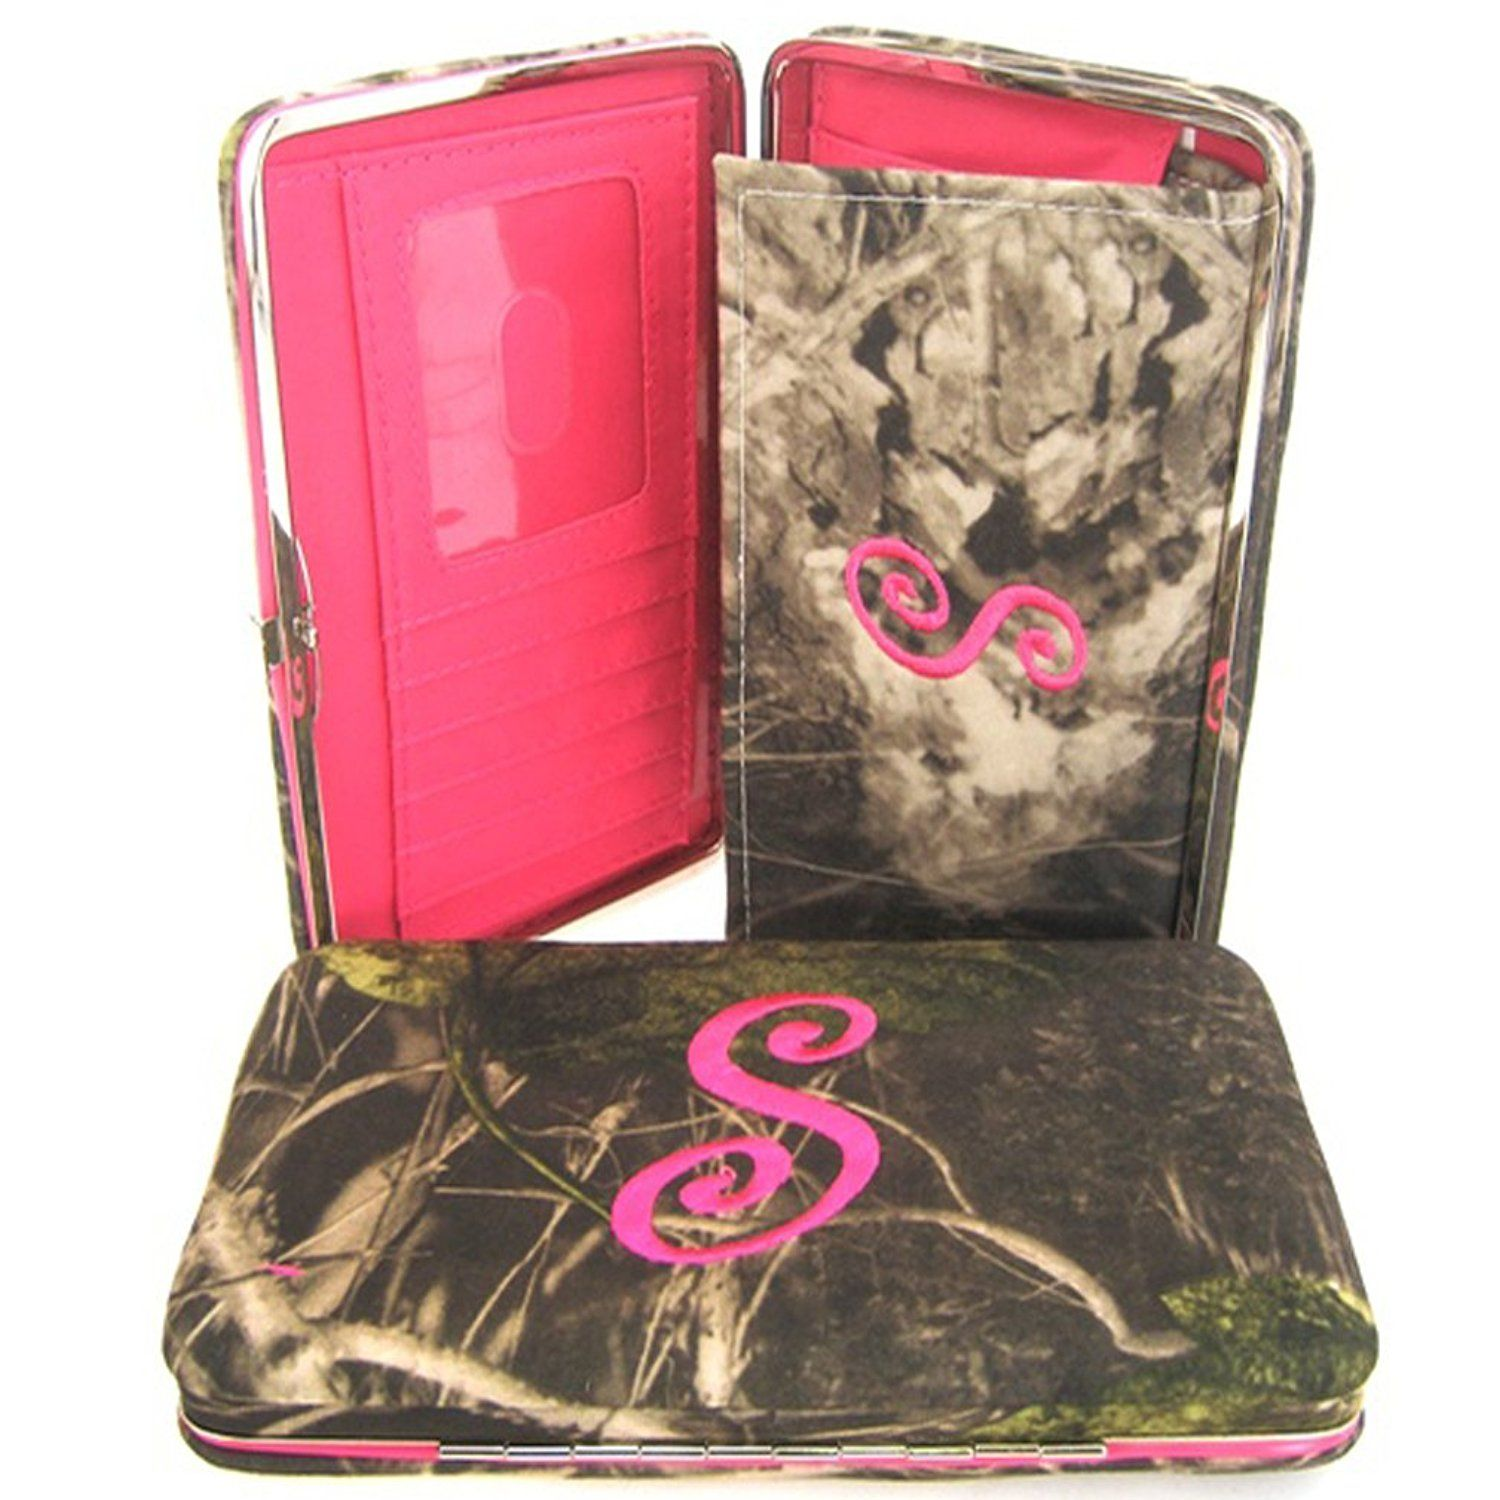 Soft Camo Initial ' S ' Thick Flat Wallet Clutch Purse Hot